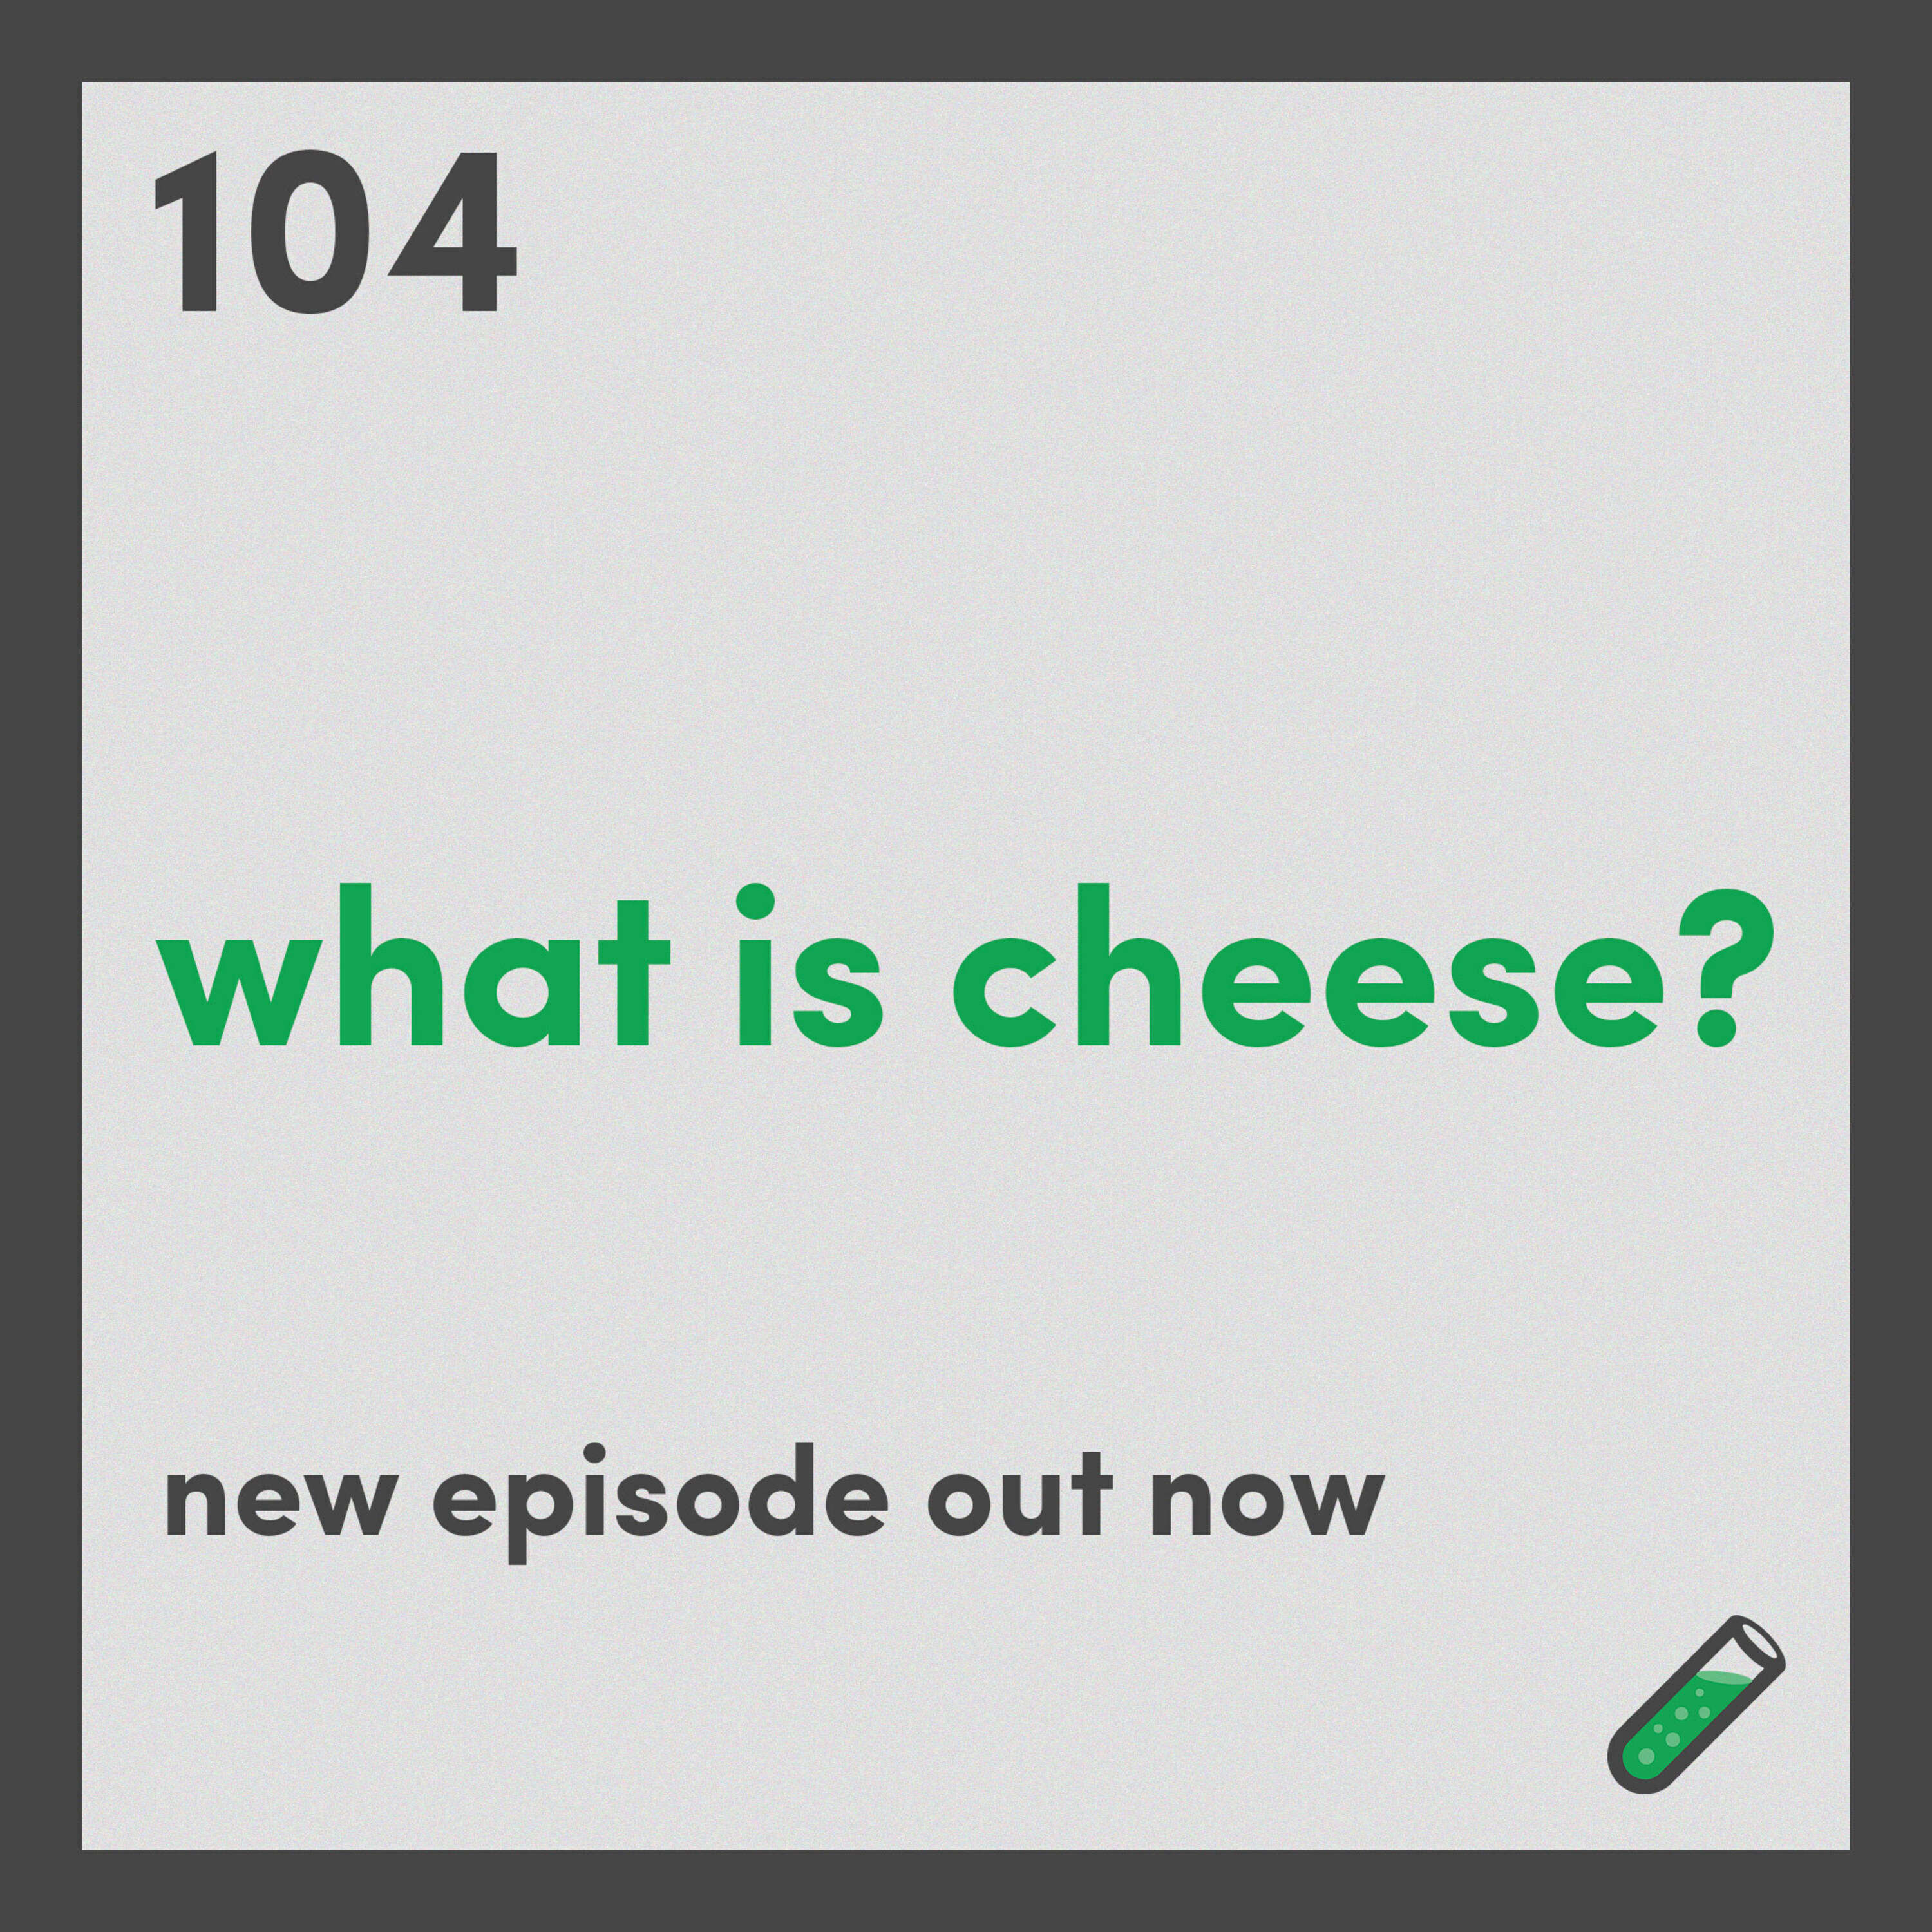 What is cheese? And what does it have in common with soap?